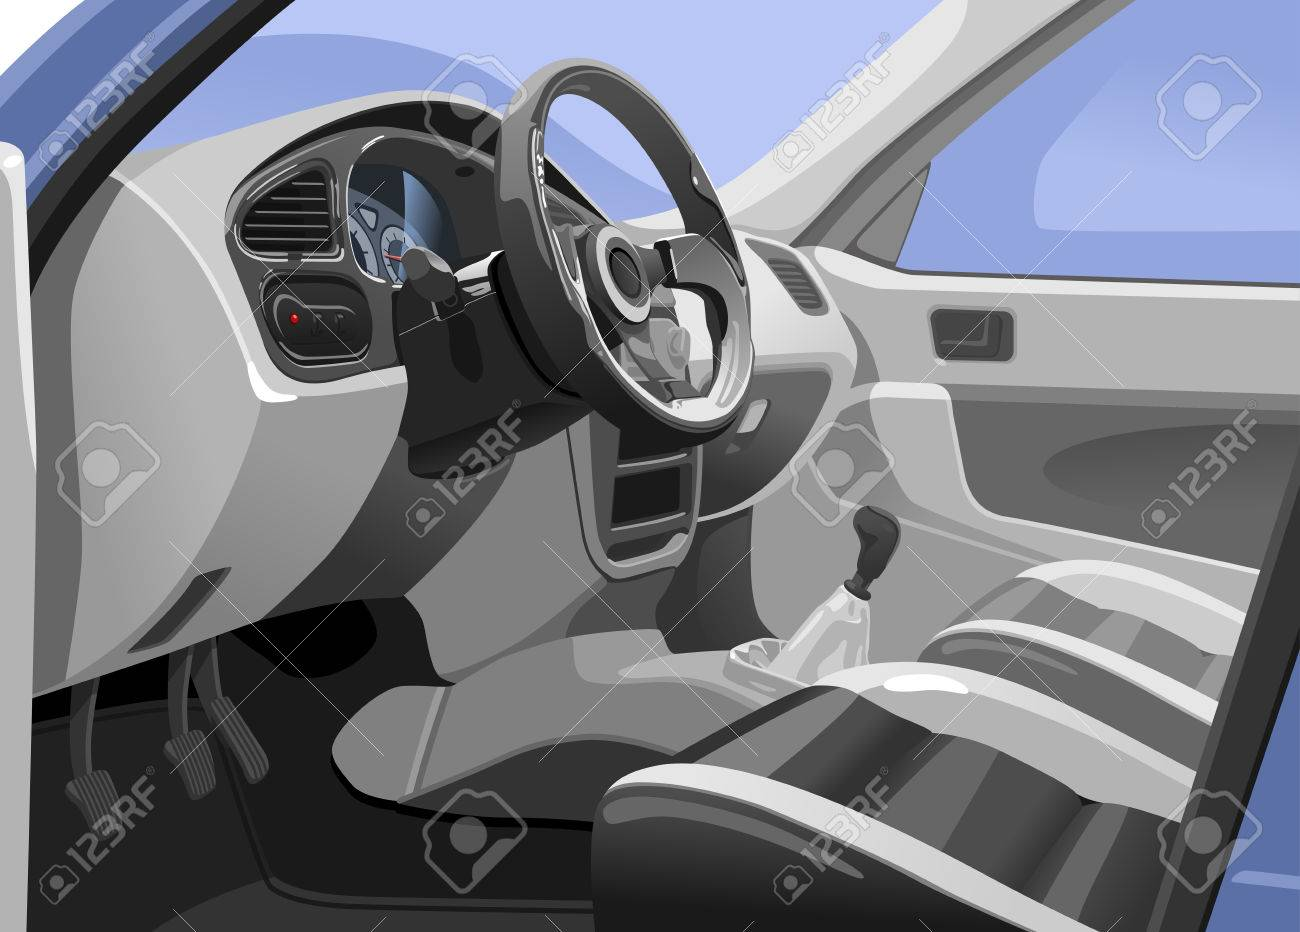 Vector illustration of a sport car interior. View from the opened door. Simple gradients only - no gradient mesh. - 54061483